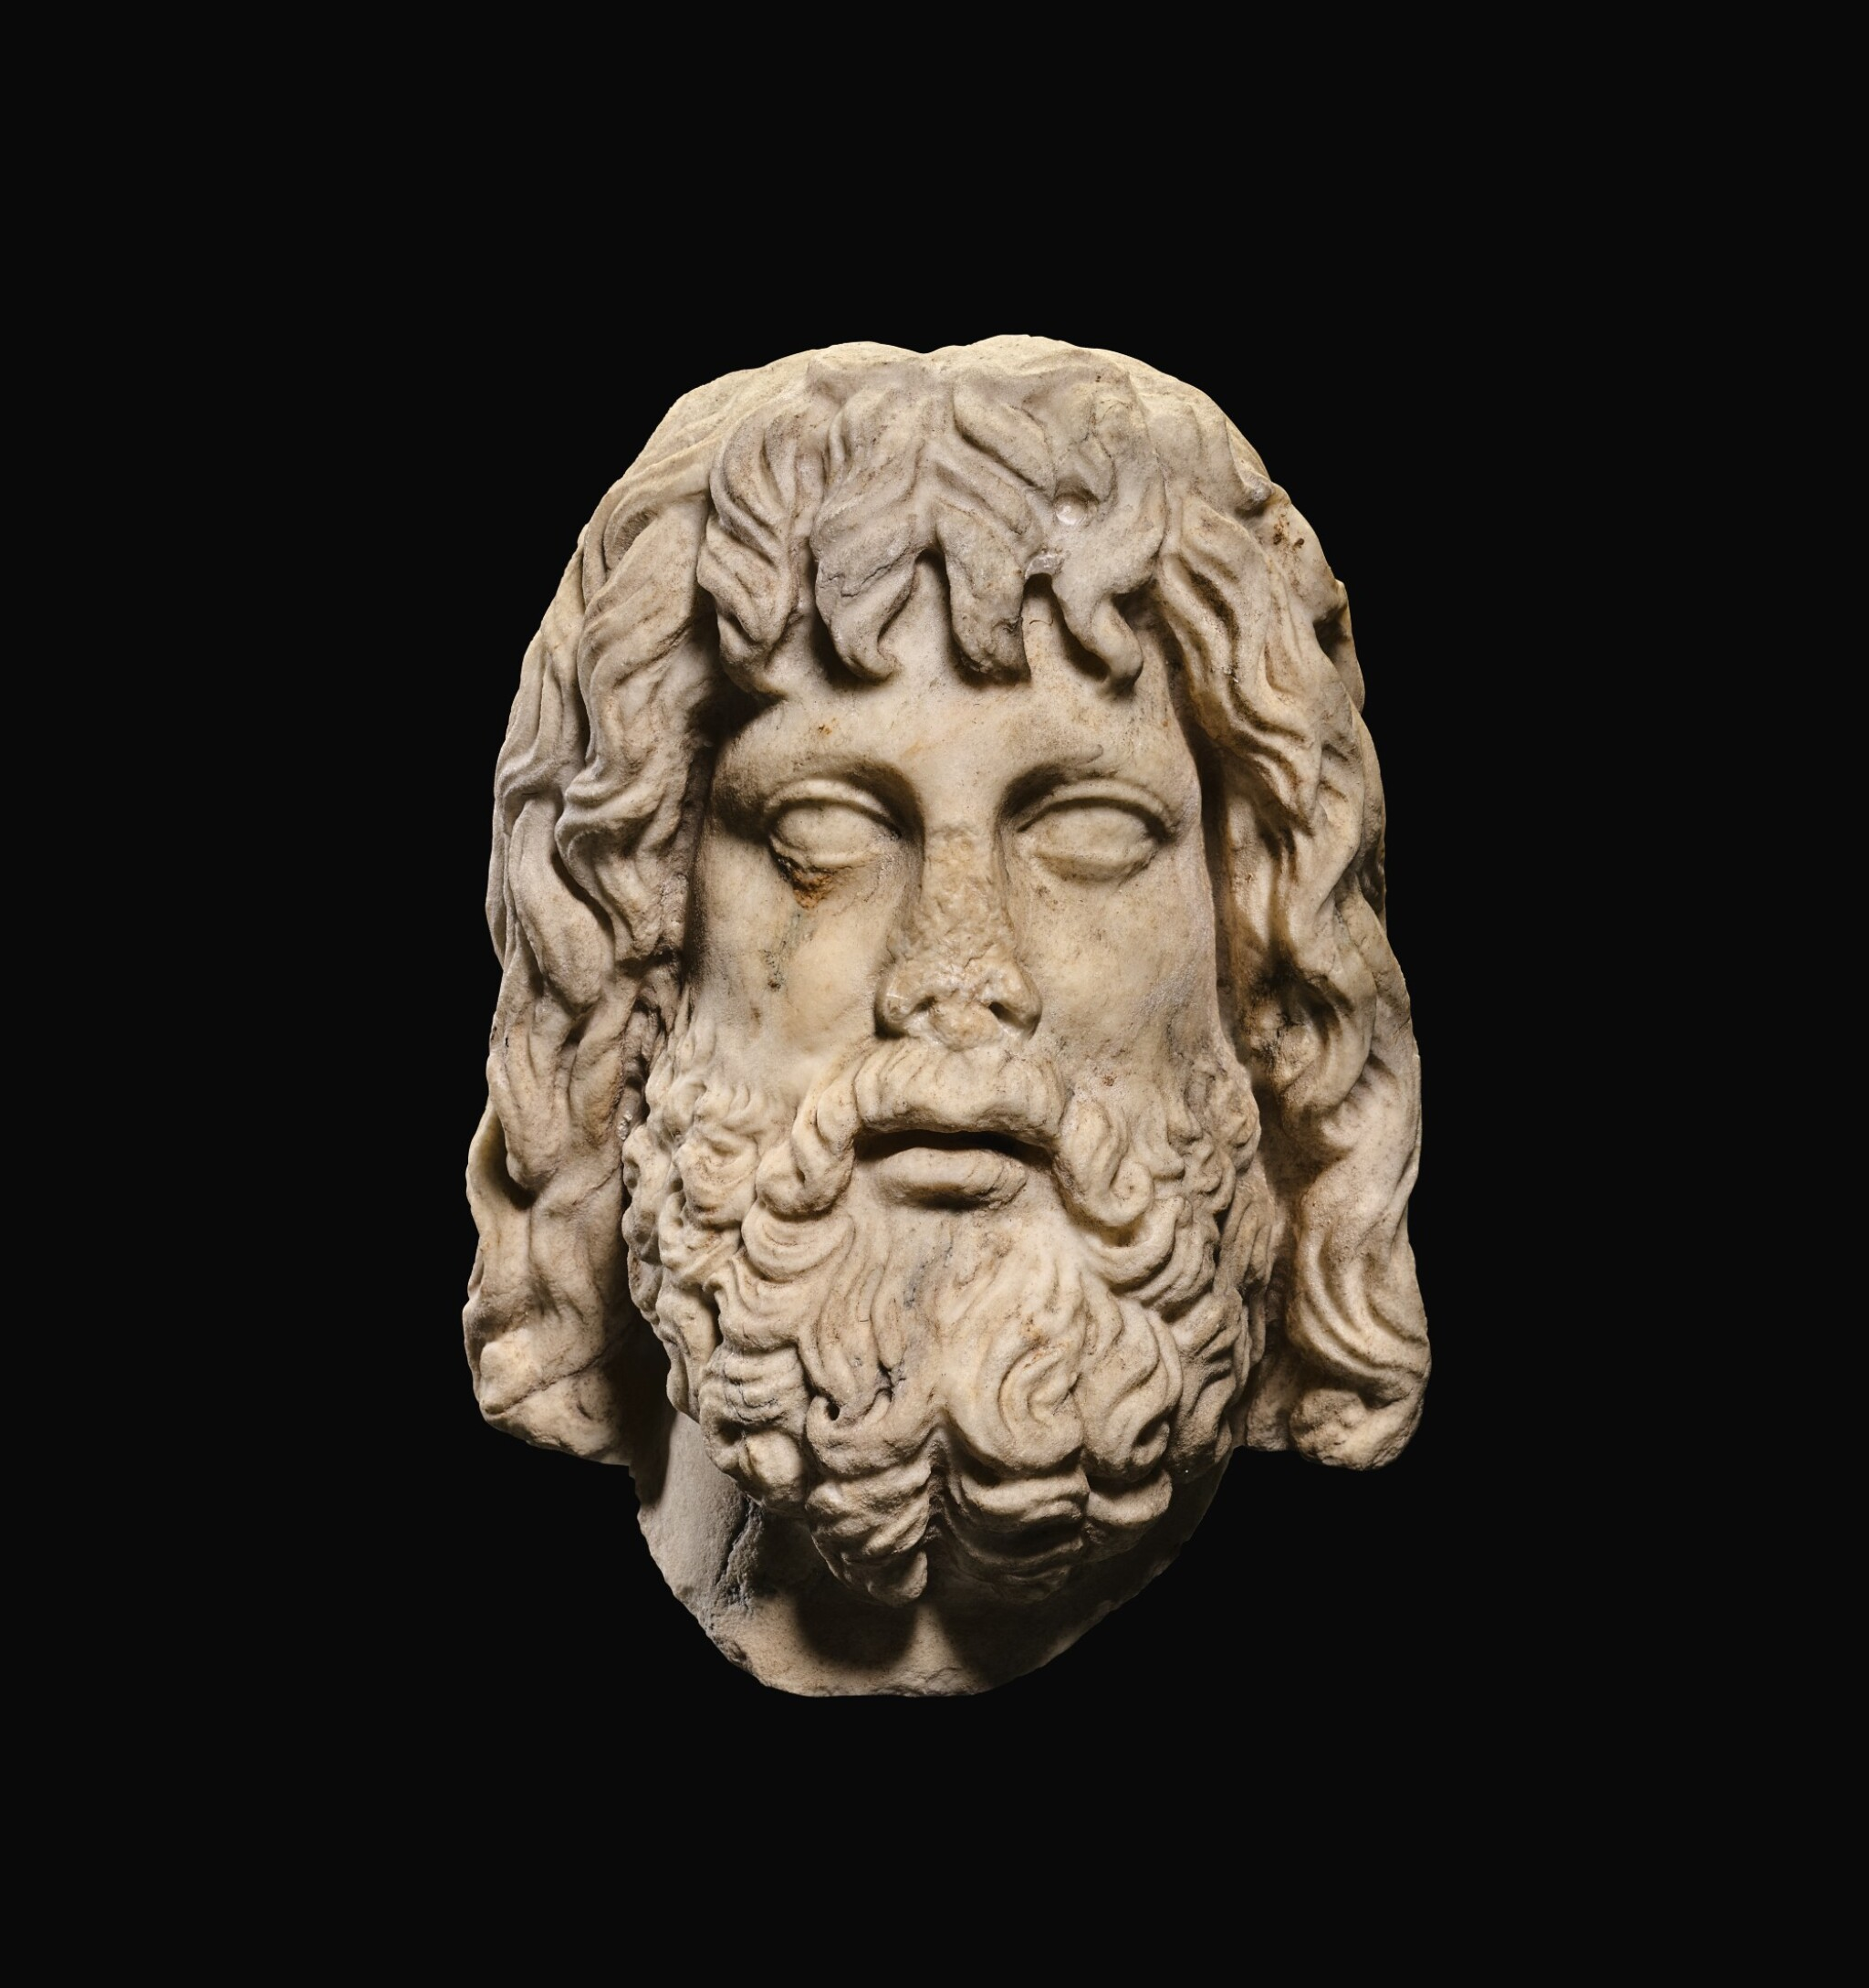 View full screen - View 1 of Lot 32. A ROMAN MARBLE HEAD OF SARAPIS, CIRCA 2ND CENTURY A.D., ON 19TH CENTURY HERM SHOULDERS.